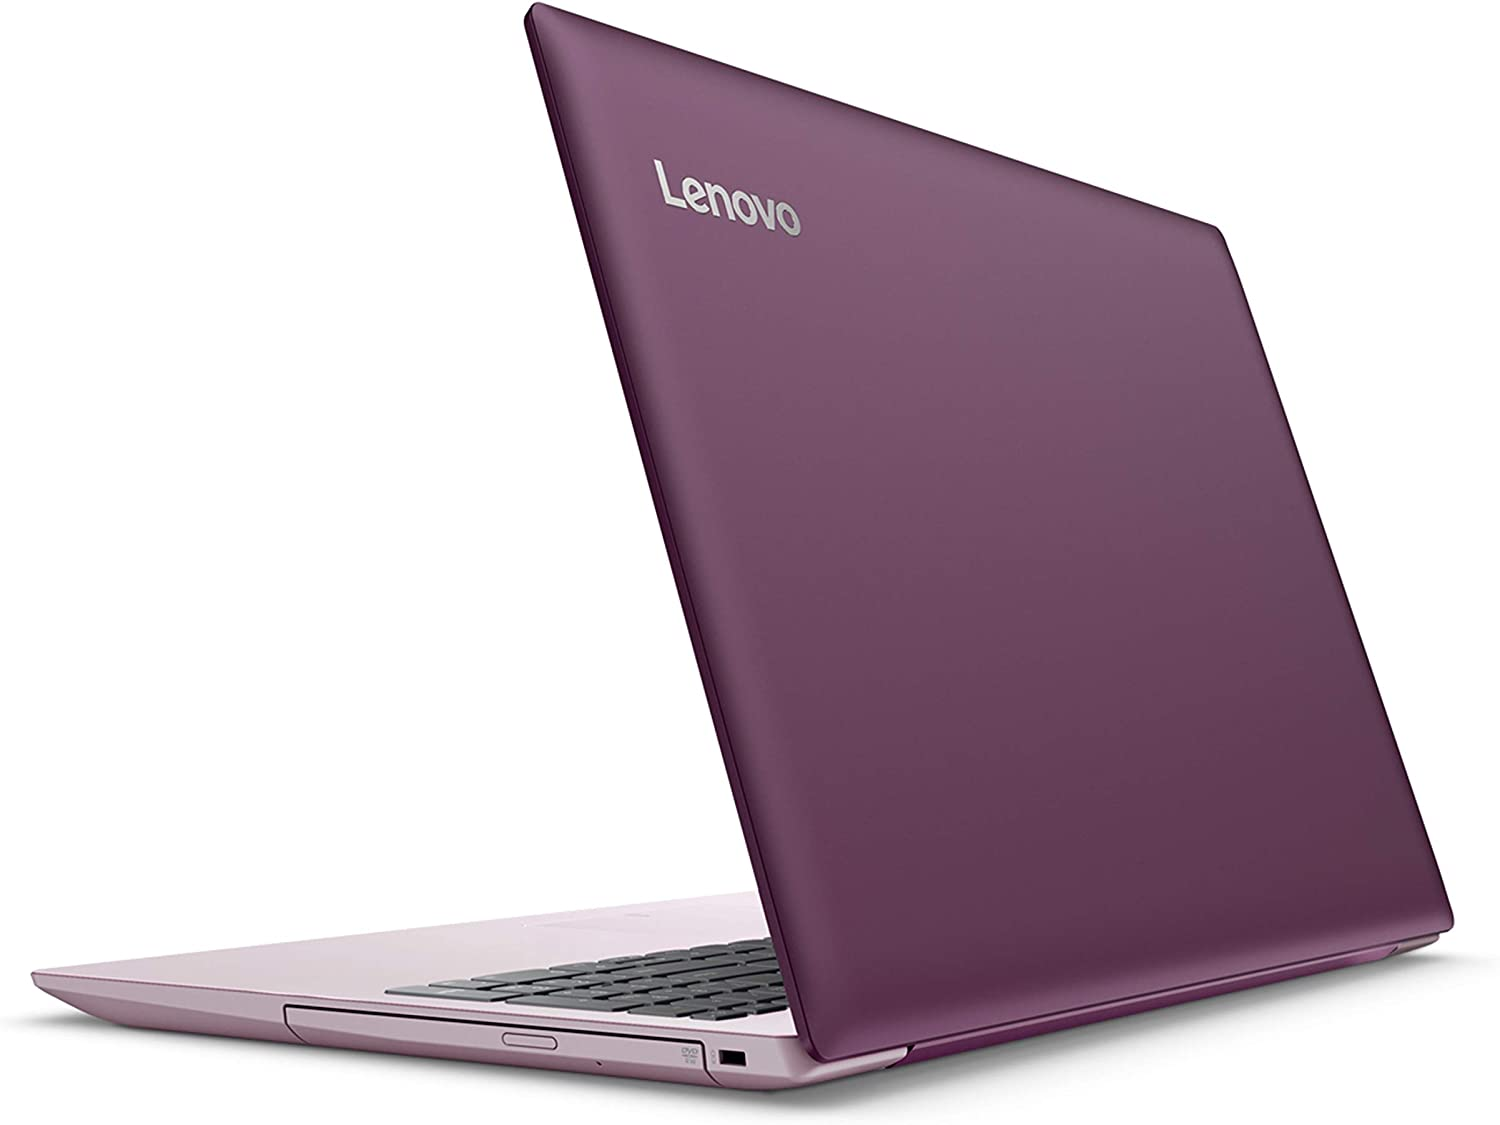 "2018 Lenovo ideapad 320 15.6"" LED-backlit Display Laptop, Intel Celeron N3350 Dual-Core Processor, 4GB RAM, 1TB HDD, DVD-RW, WIFI, Bluetooth, HDMI, Intel HD Graphics 500, Windows 10, Purple"